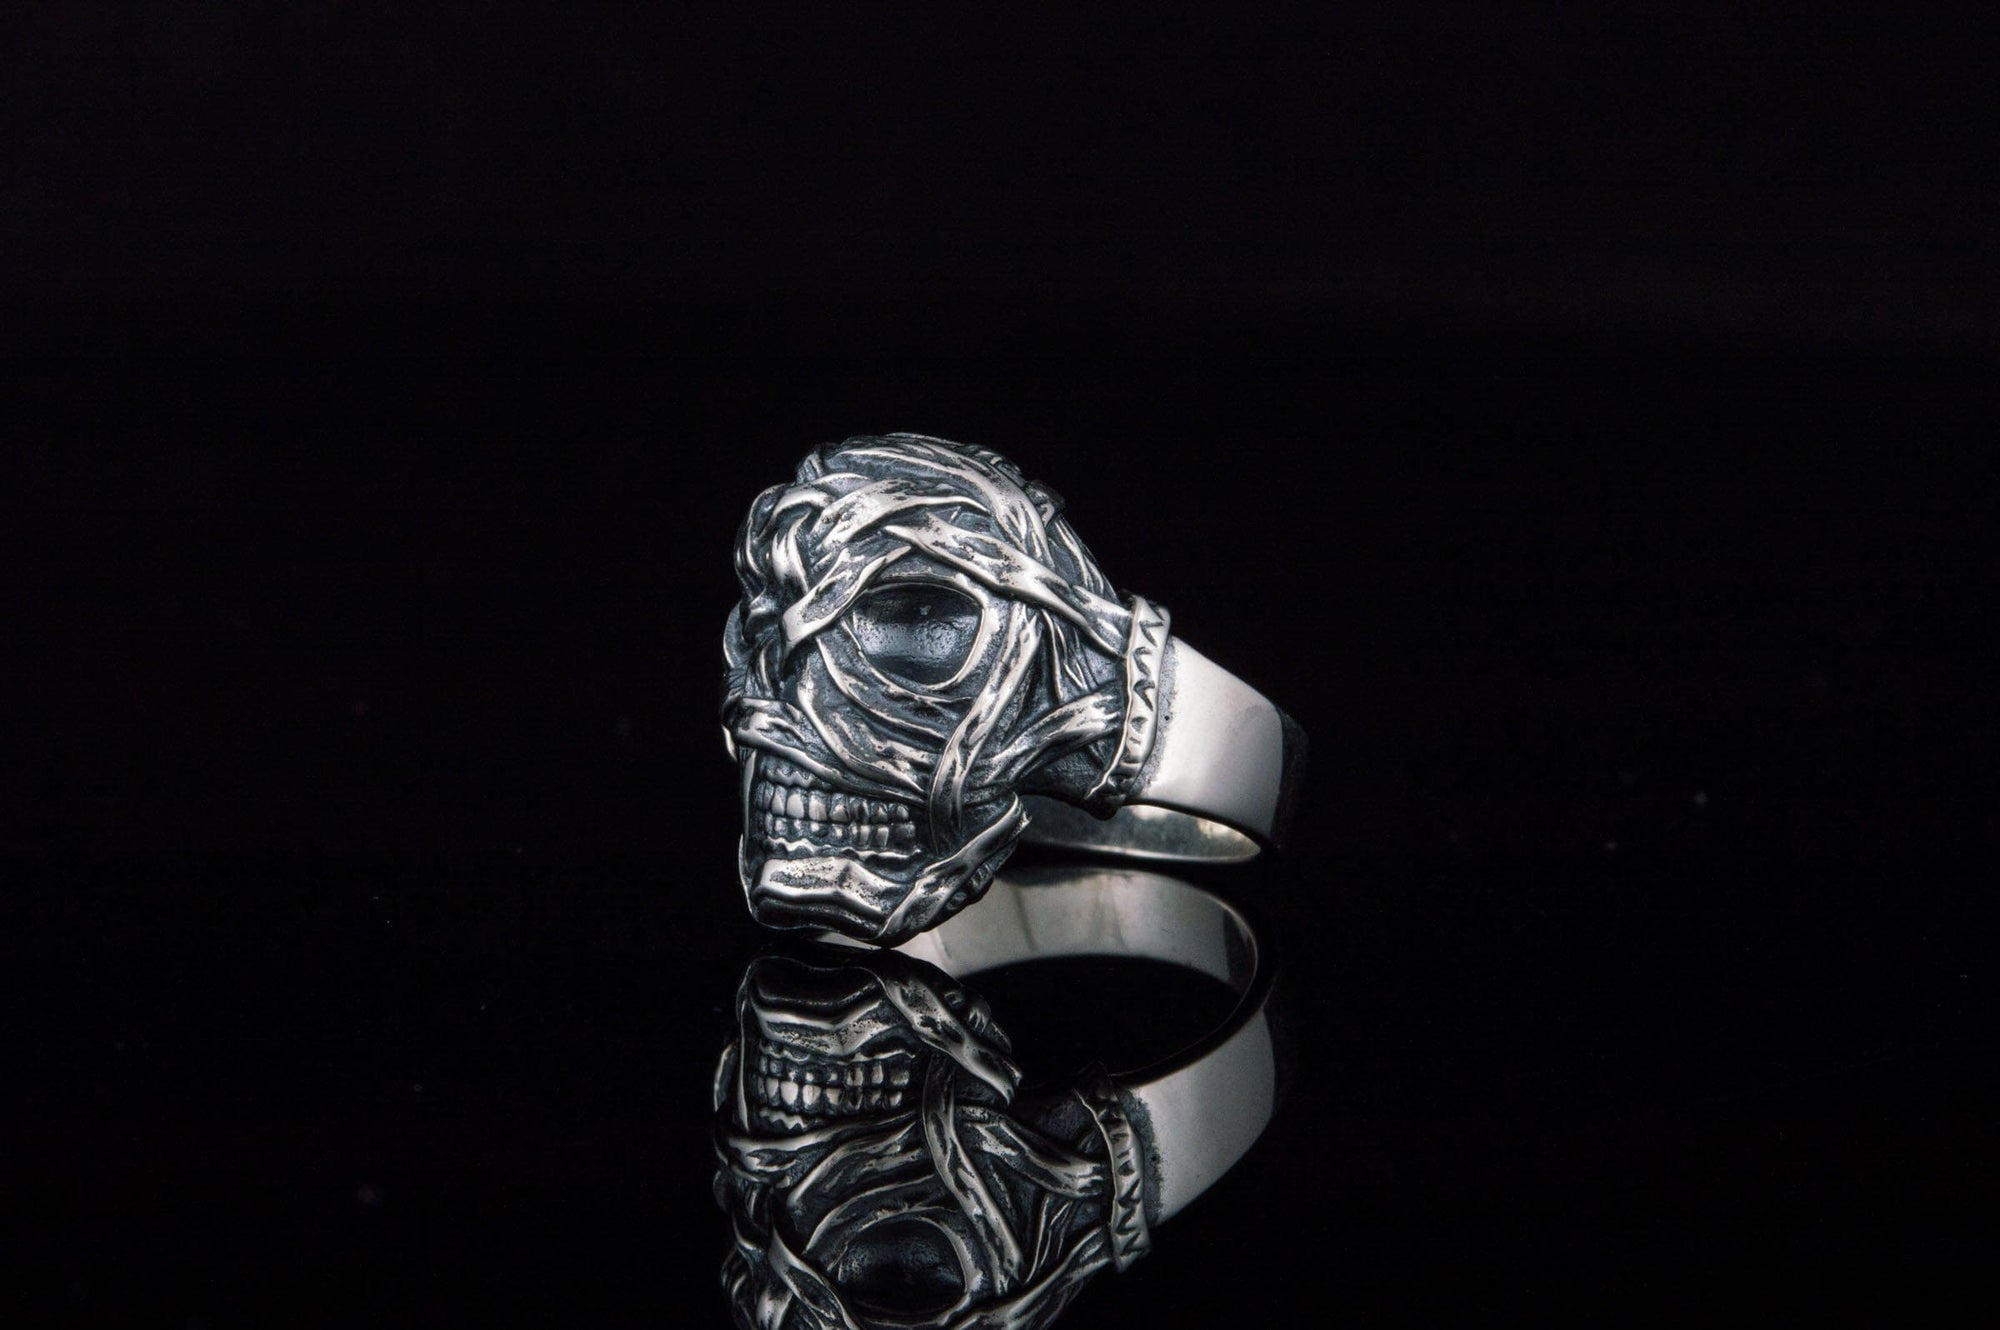 Rings Ancient Egypt Mummy Sterling Silver Ring Ancient Treasures Ancientreasures Viking Odin Thor Mjolnir Celtic Ancient Egypt Norse Norse Mythology